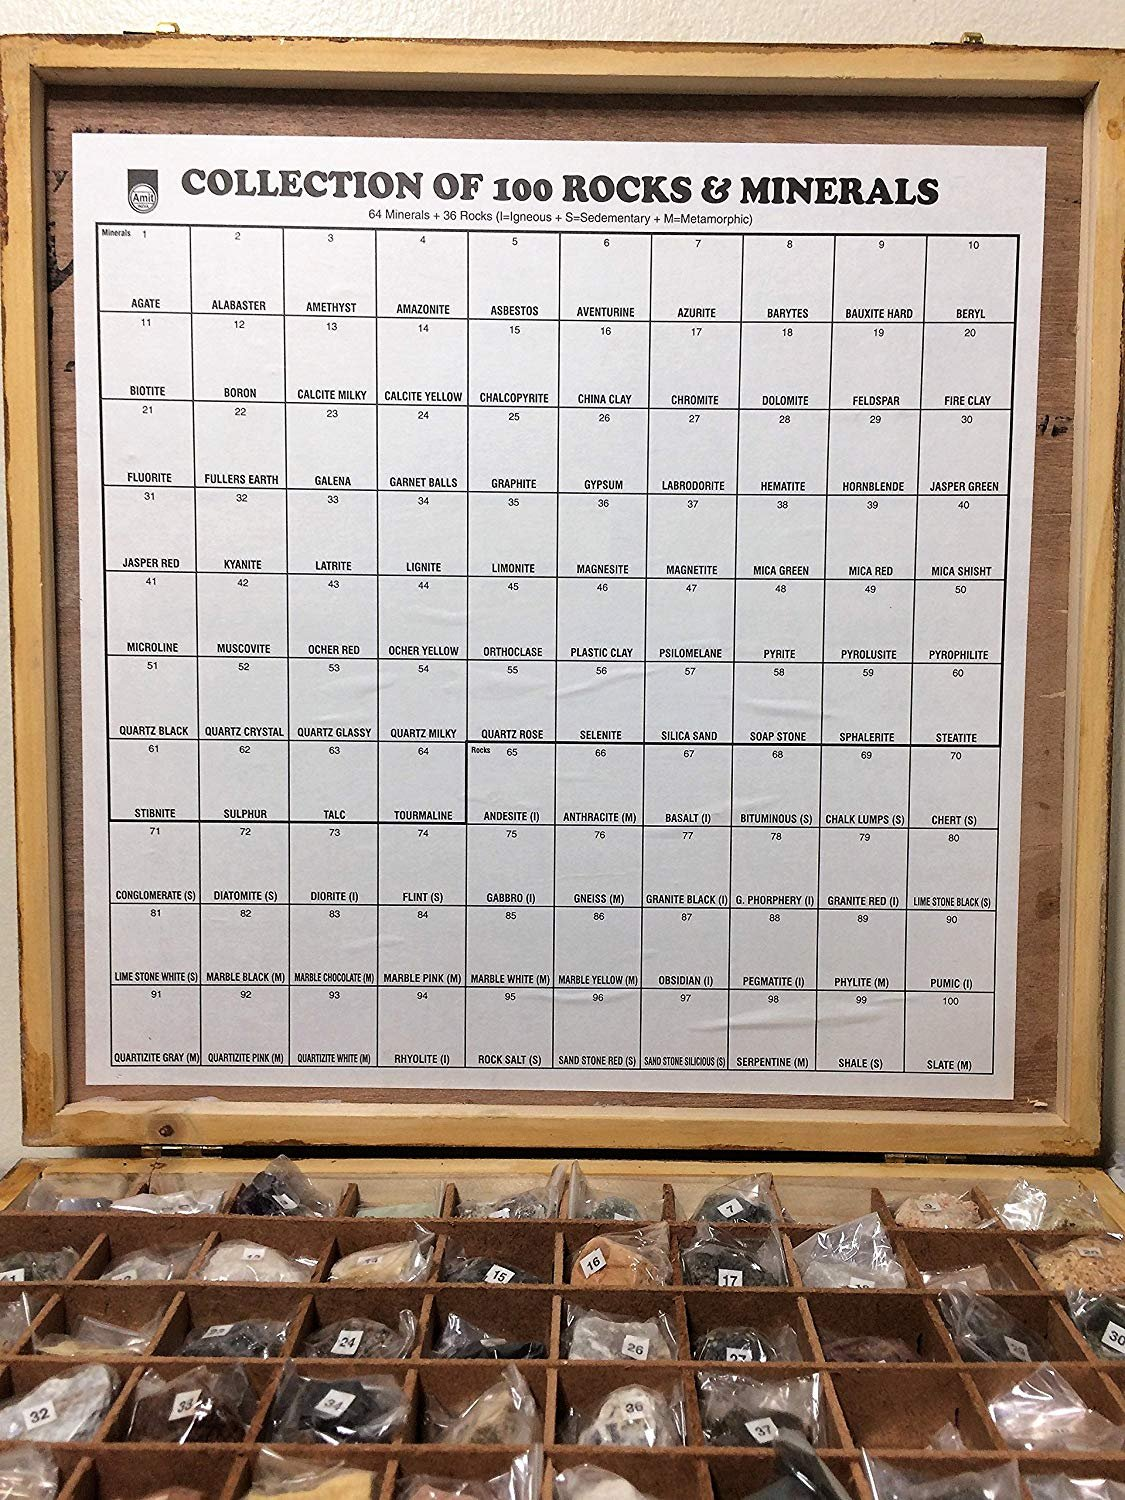 Yantra 100 Rocks and Minerals Collection in Wooden Box Geology Civil Educational by Yantra (Image #2)